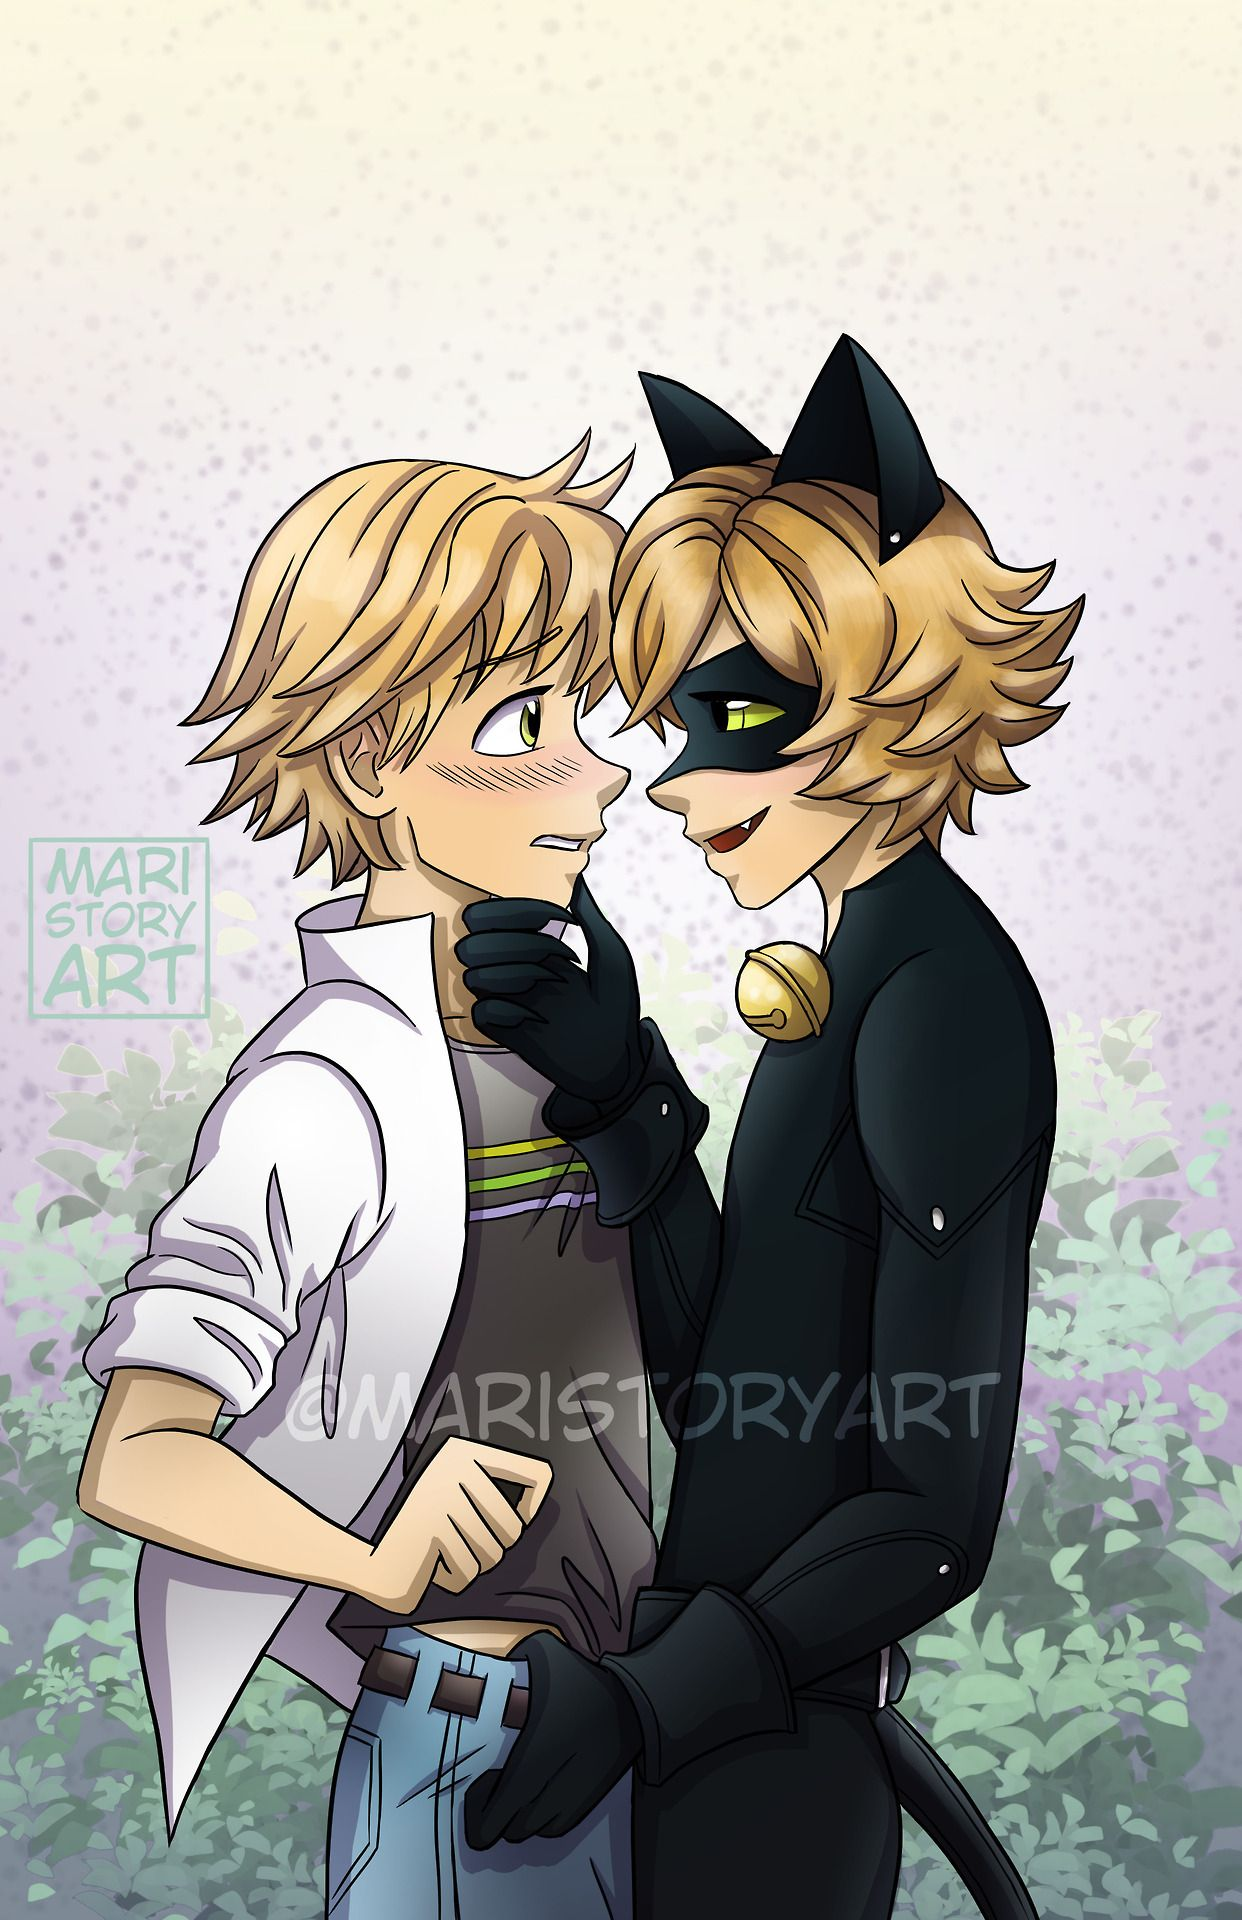 Adrien Video Porno Gay Dfe Miracoulus here's some risky~ chat noir x adrien for you all! mwhahaha